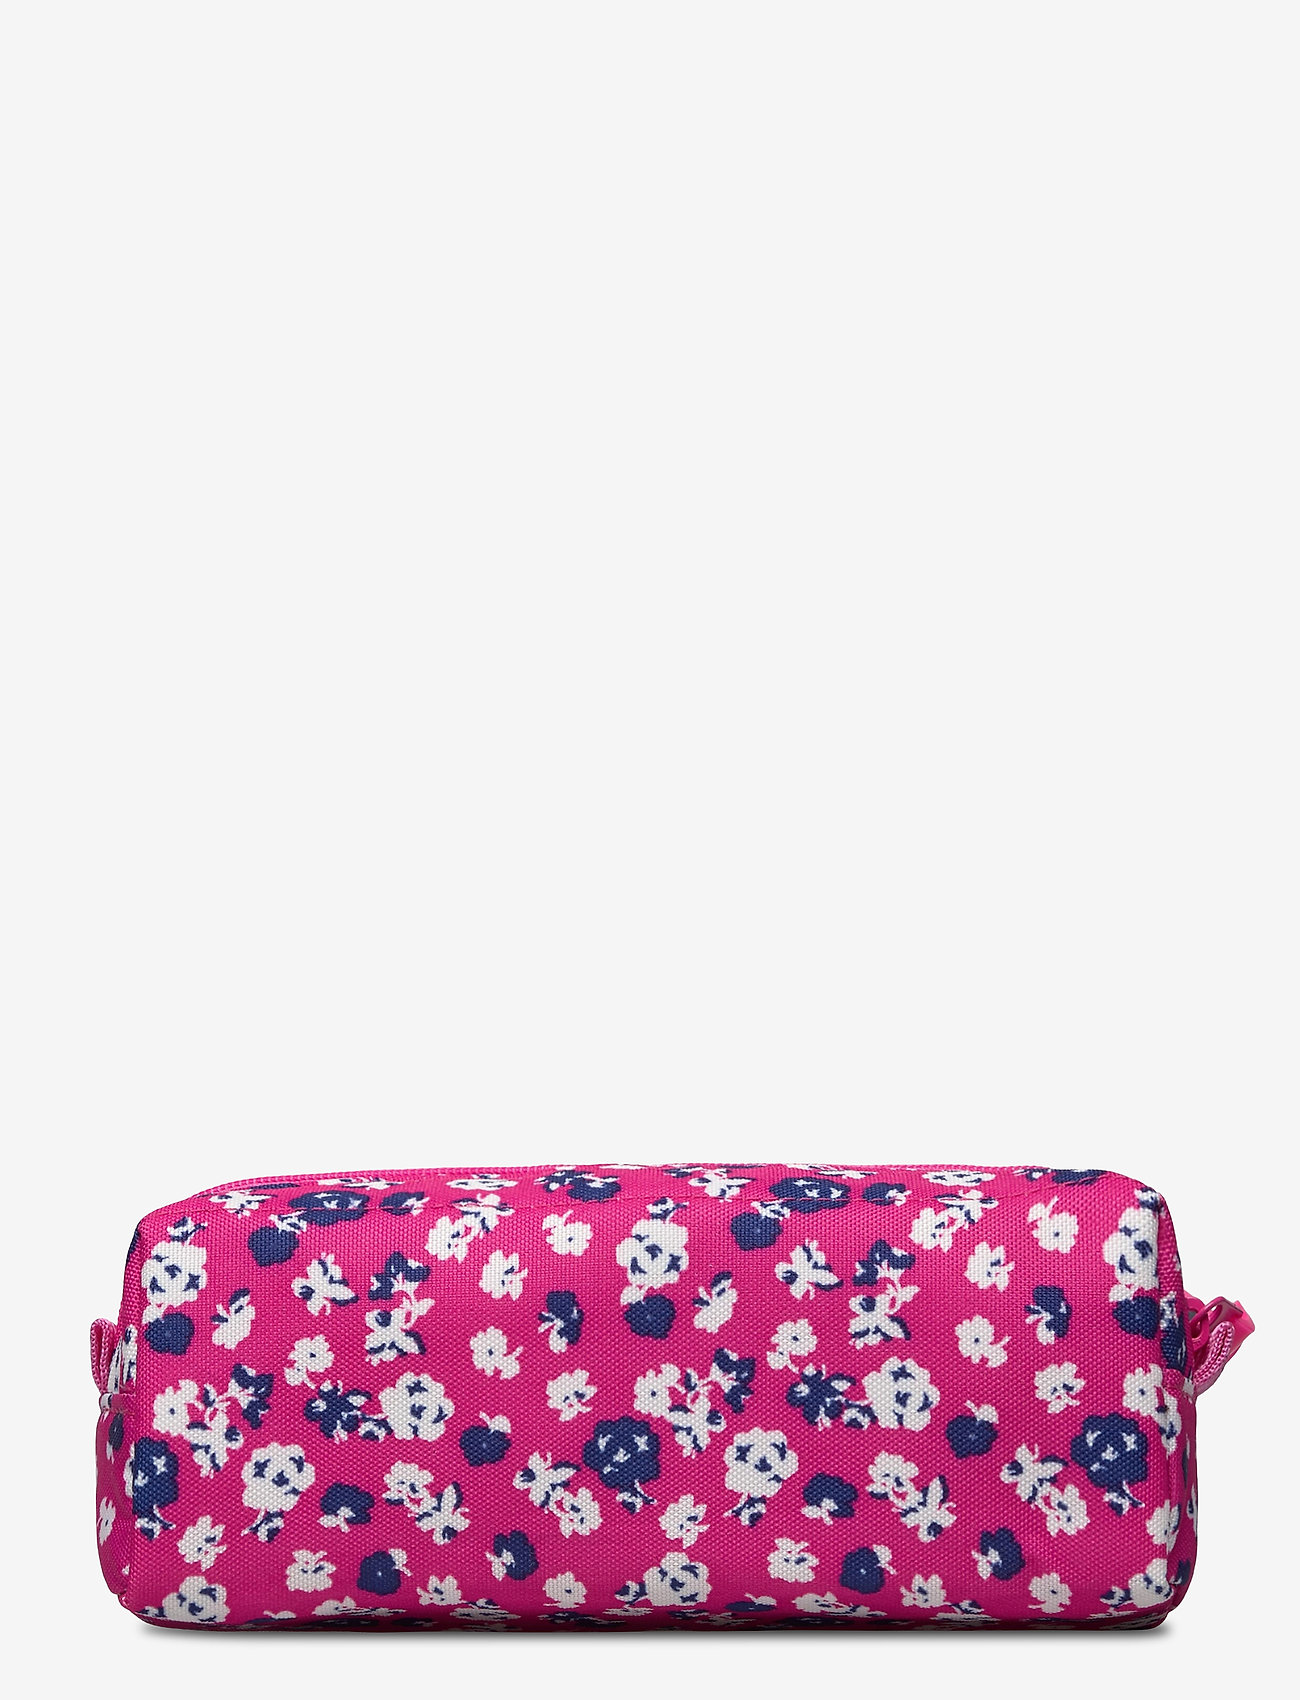 Ms Ditsy Montana Pencil Case (Fluro Pink/white) (13.97 €) - Superdry ShkQ162r